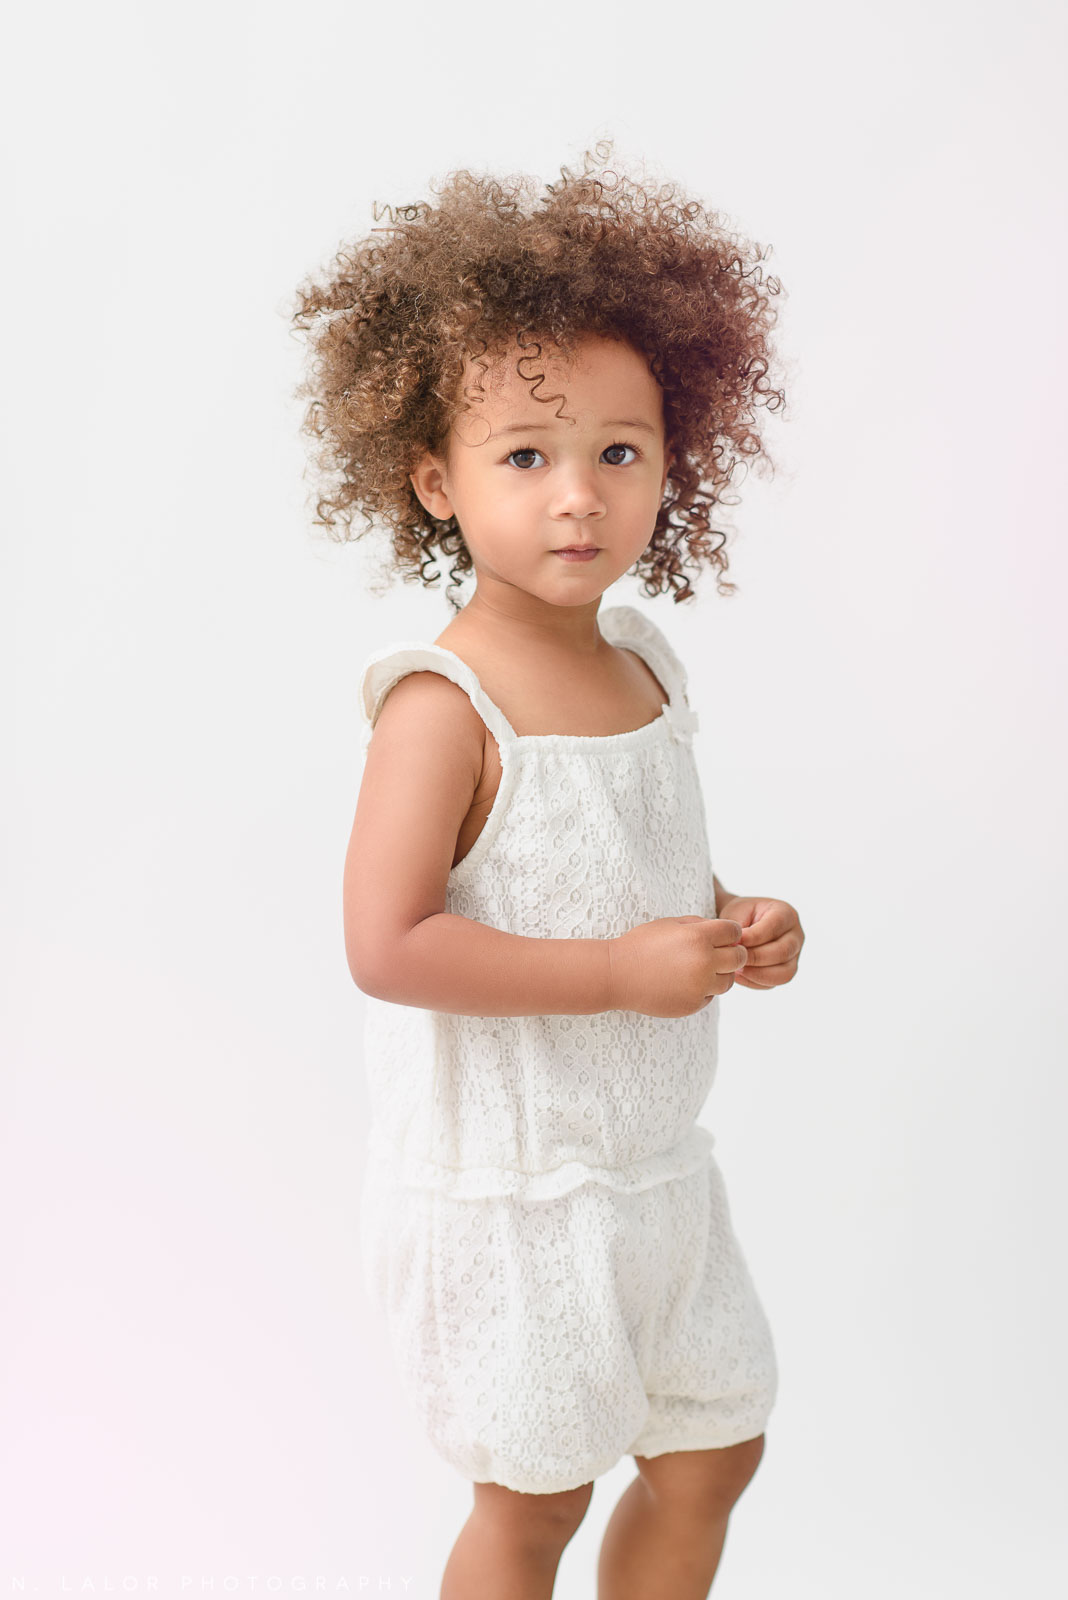 Little 2-year old model. Studio portrait session with N. Lalor Photography in Greenwich, Connecticut.